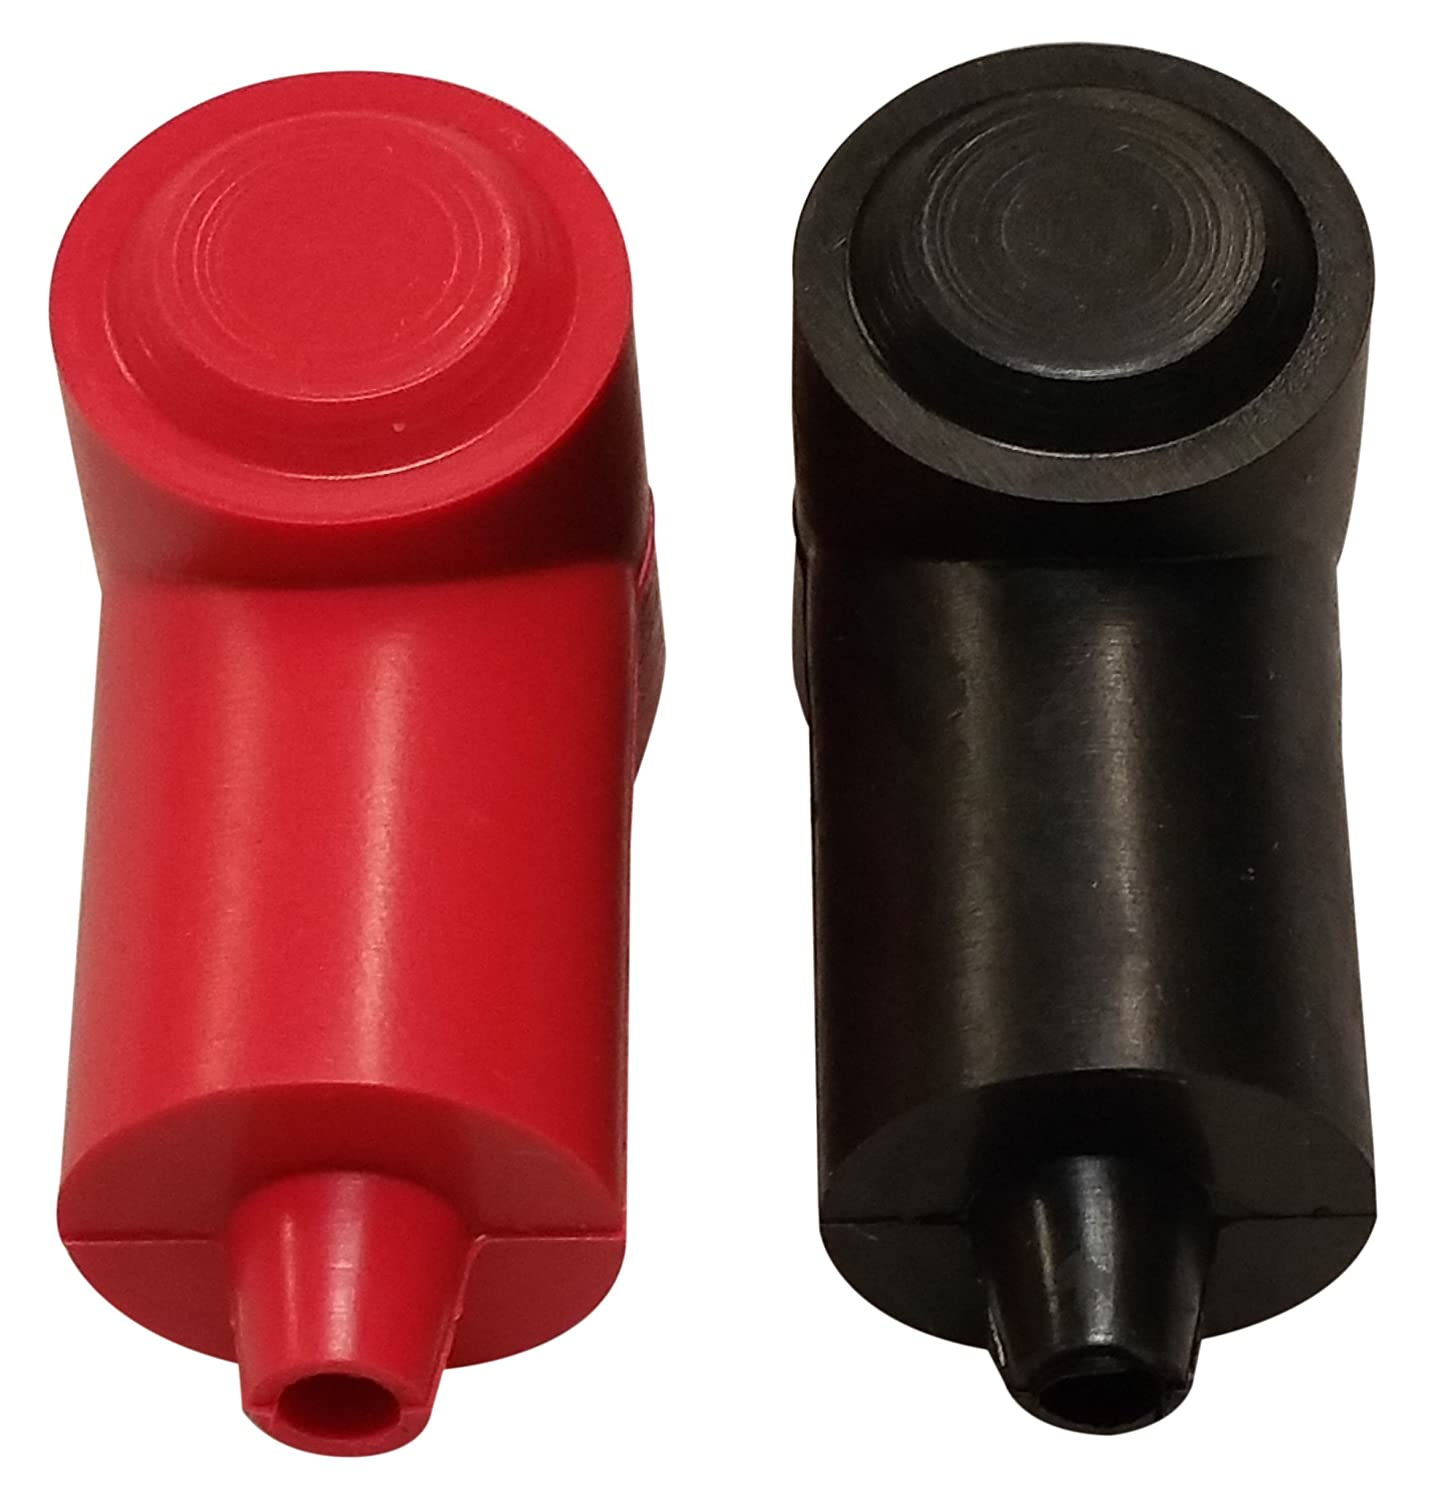 1//4 Stud Terminal Cover Electrical Battery Connection Insulator 2 Pack Red